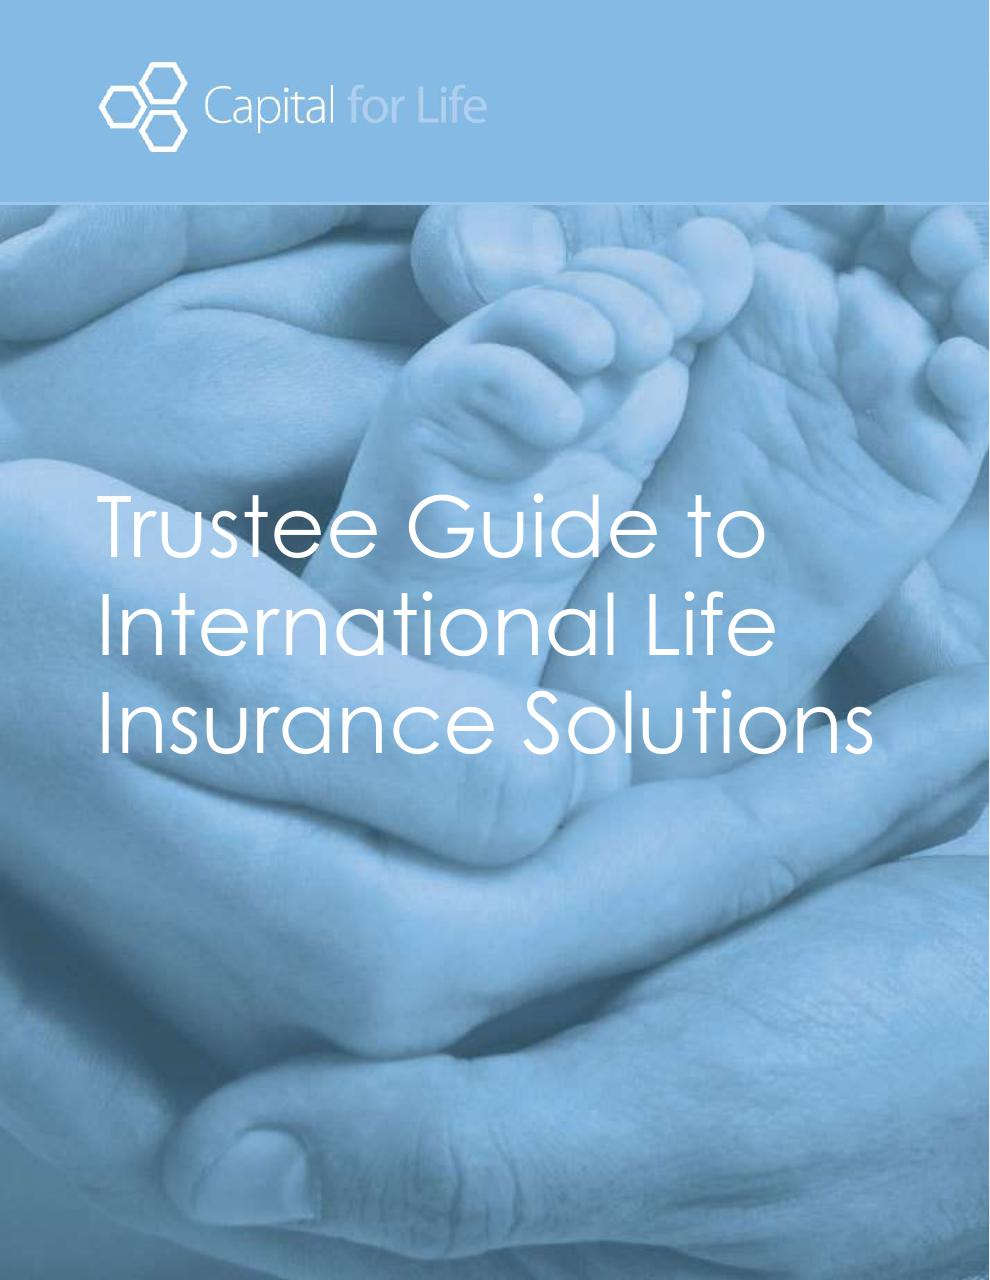 trustee guide to international life insurance solutions   capital for life.pdf